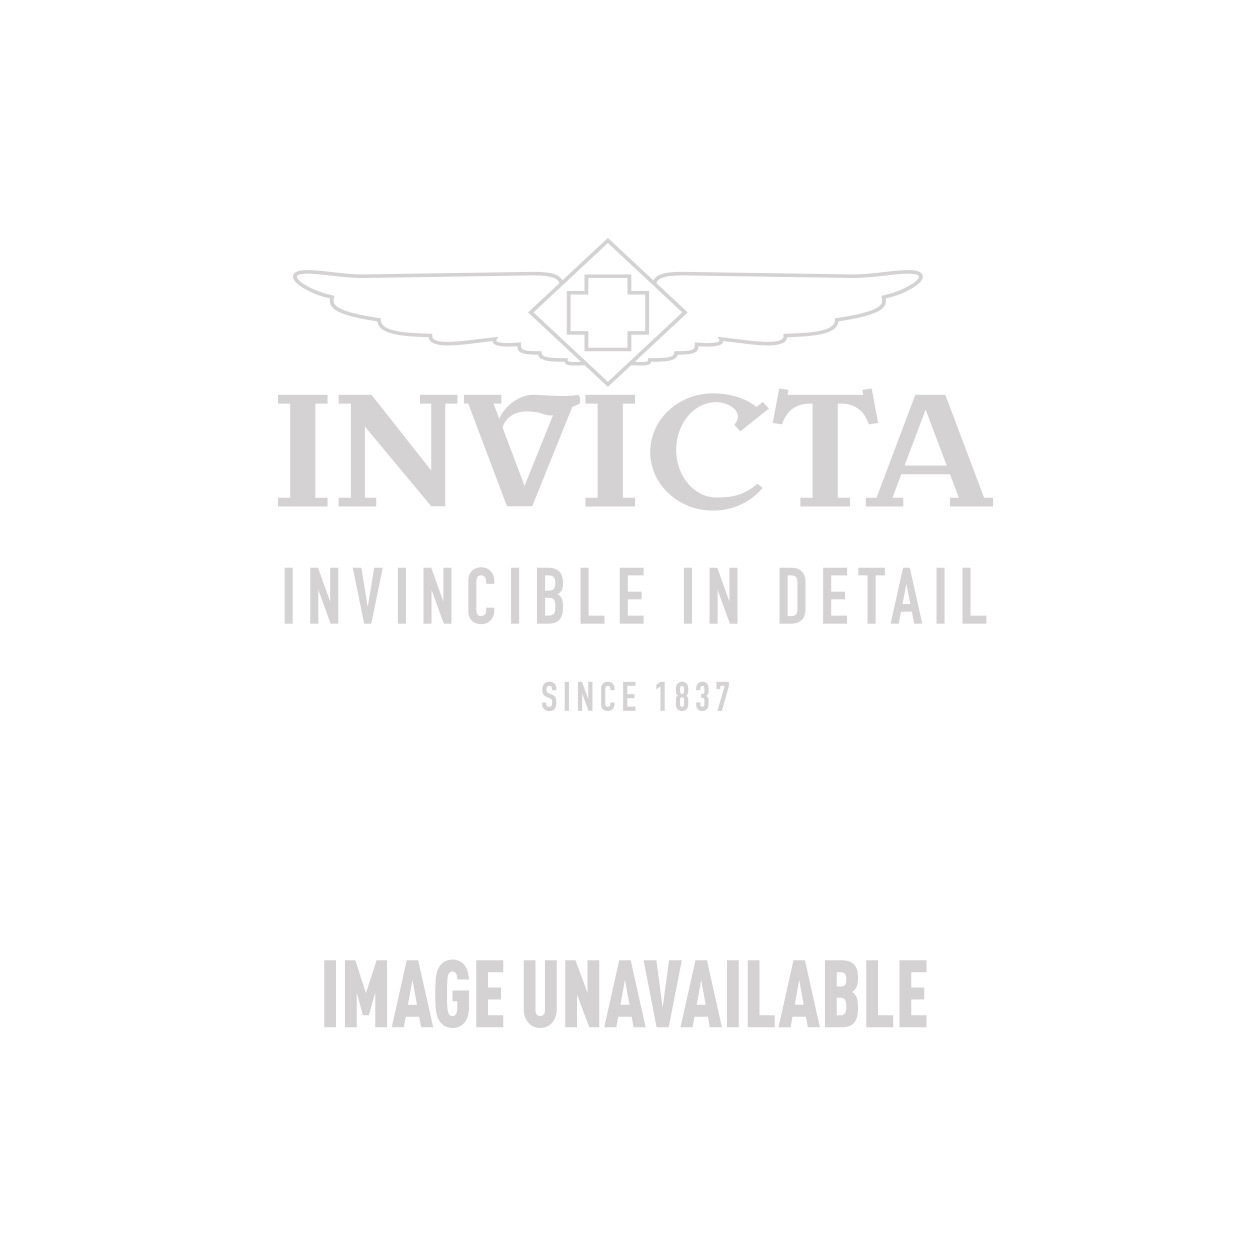 Invicta I-Force Quartz Watch - Stainless Steel case with Black tone Polyurethane band - Model 19251